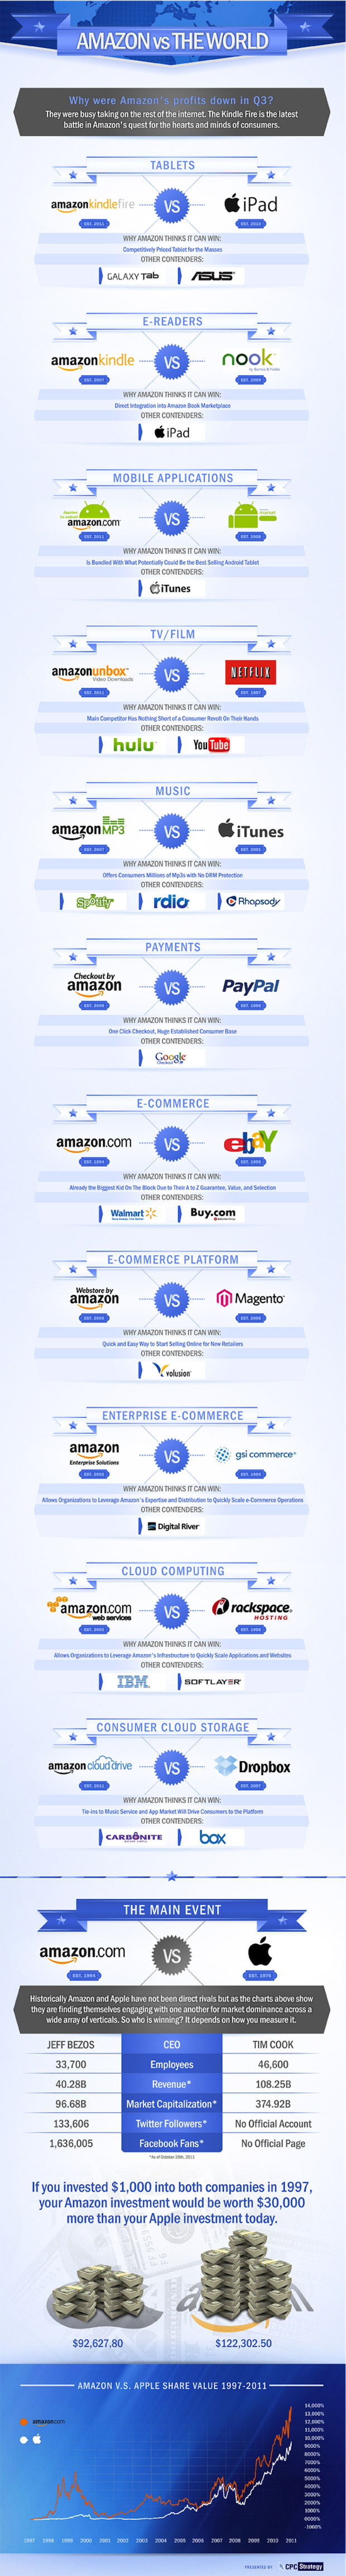 Amazon vs World